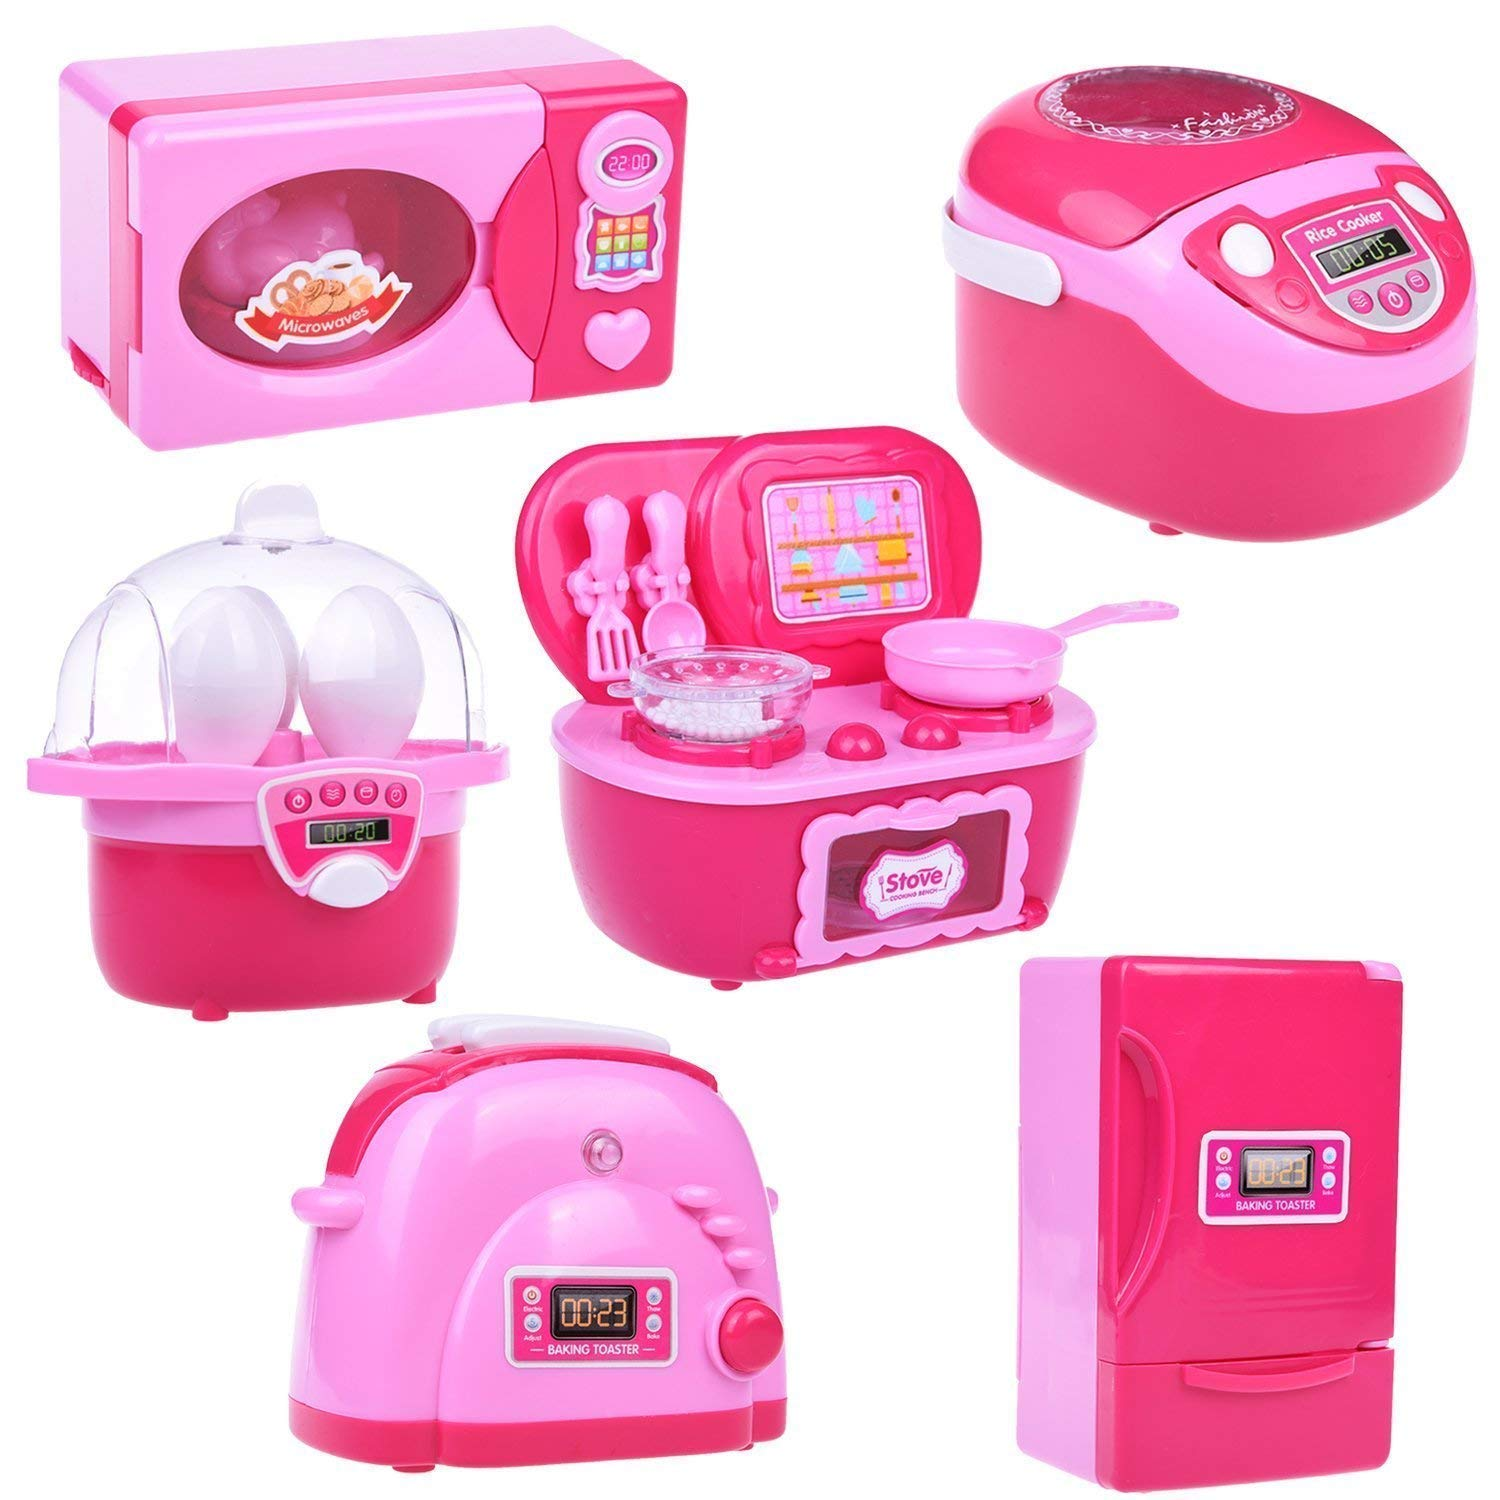 Kitchen Toys for Kids, 6PCs Mini Electric Simulation Play Kitchen Accessories Inculiding Microwave Oven, Toaster, Refrigerator, Rice Cooker, Egg Stepper, Pink Kitchen Appliances for Girls